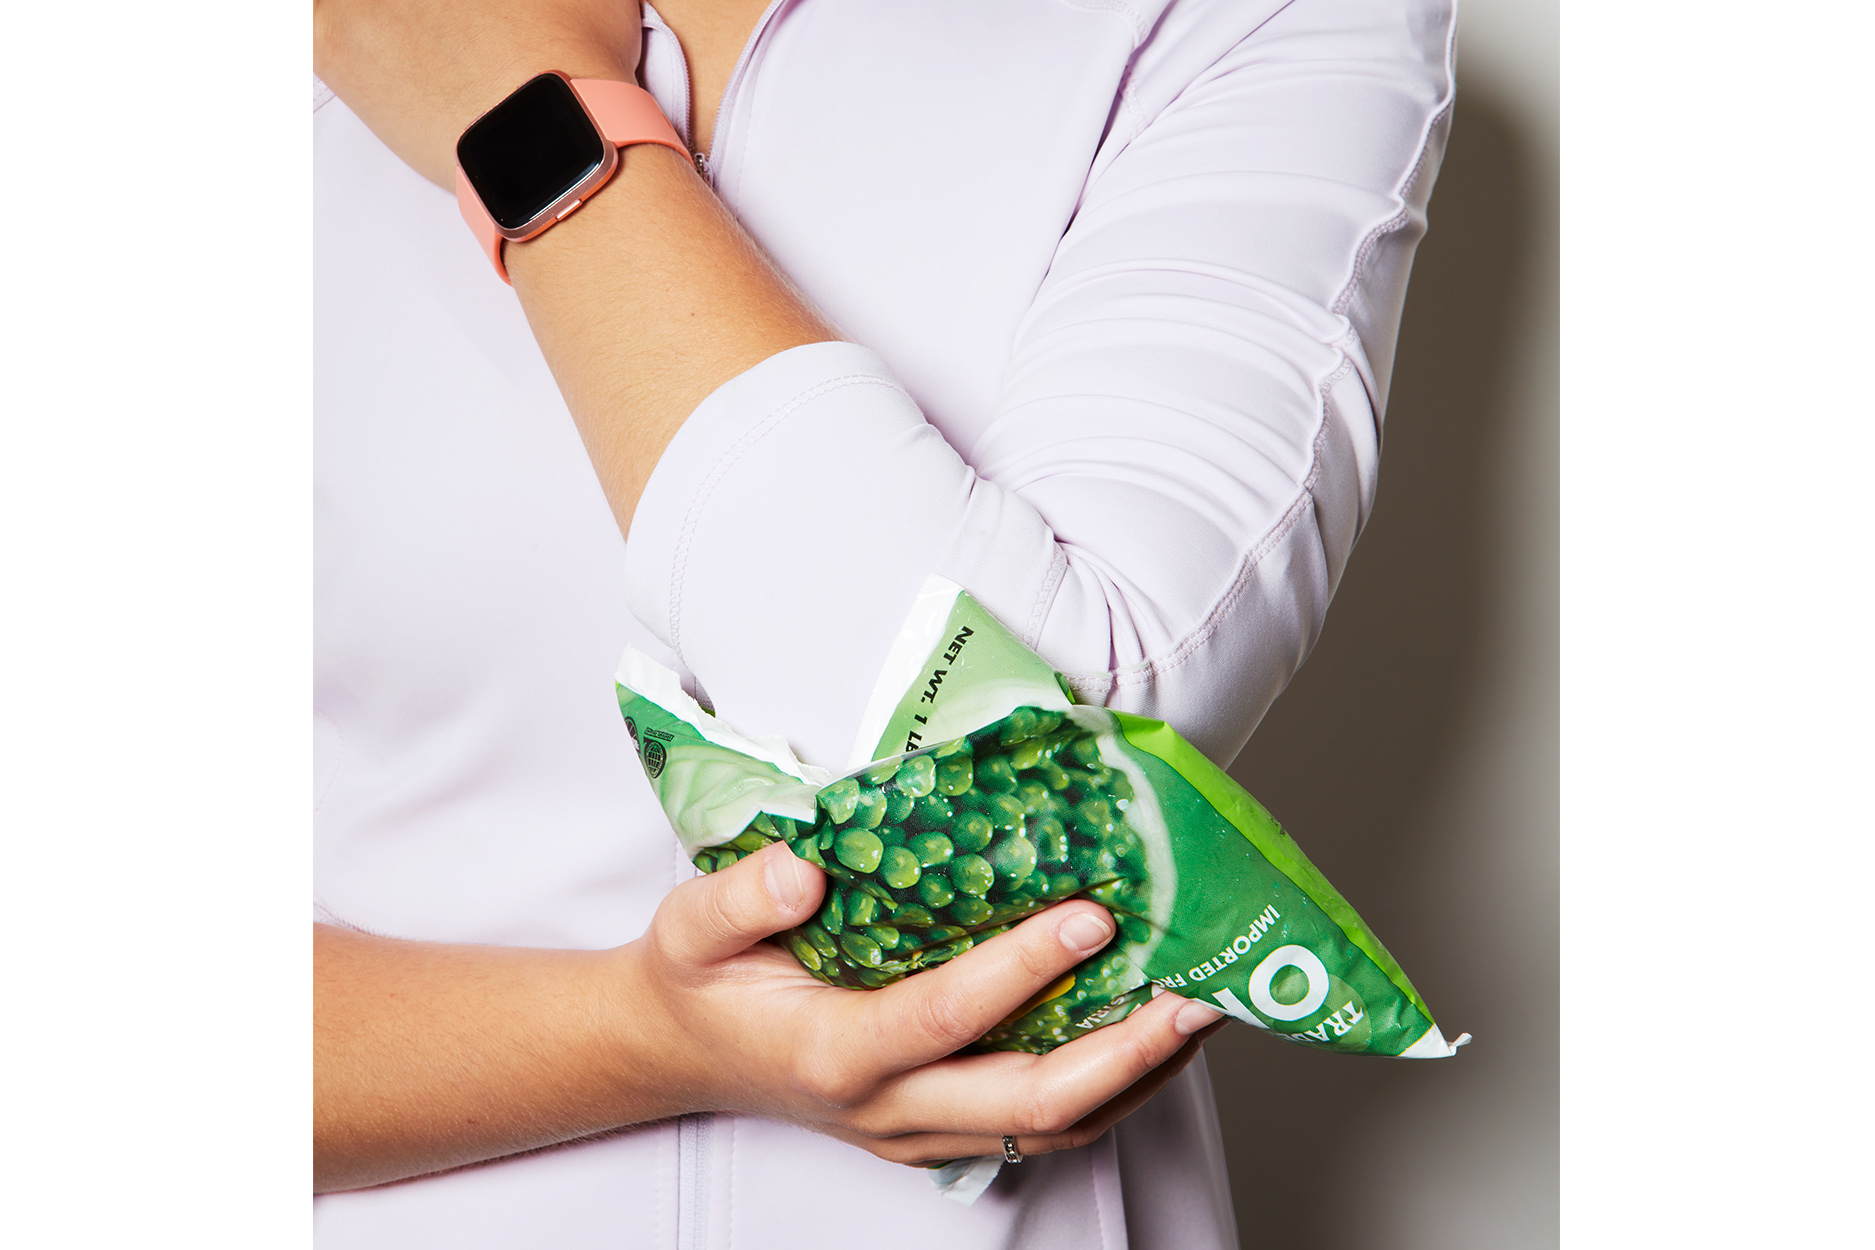 Girl icing her elbow with a bag of frozen peas